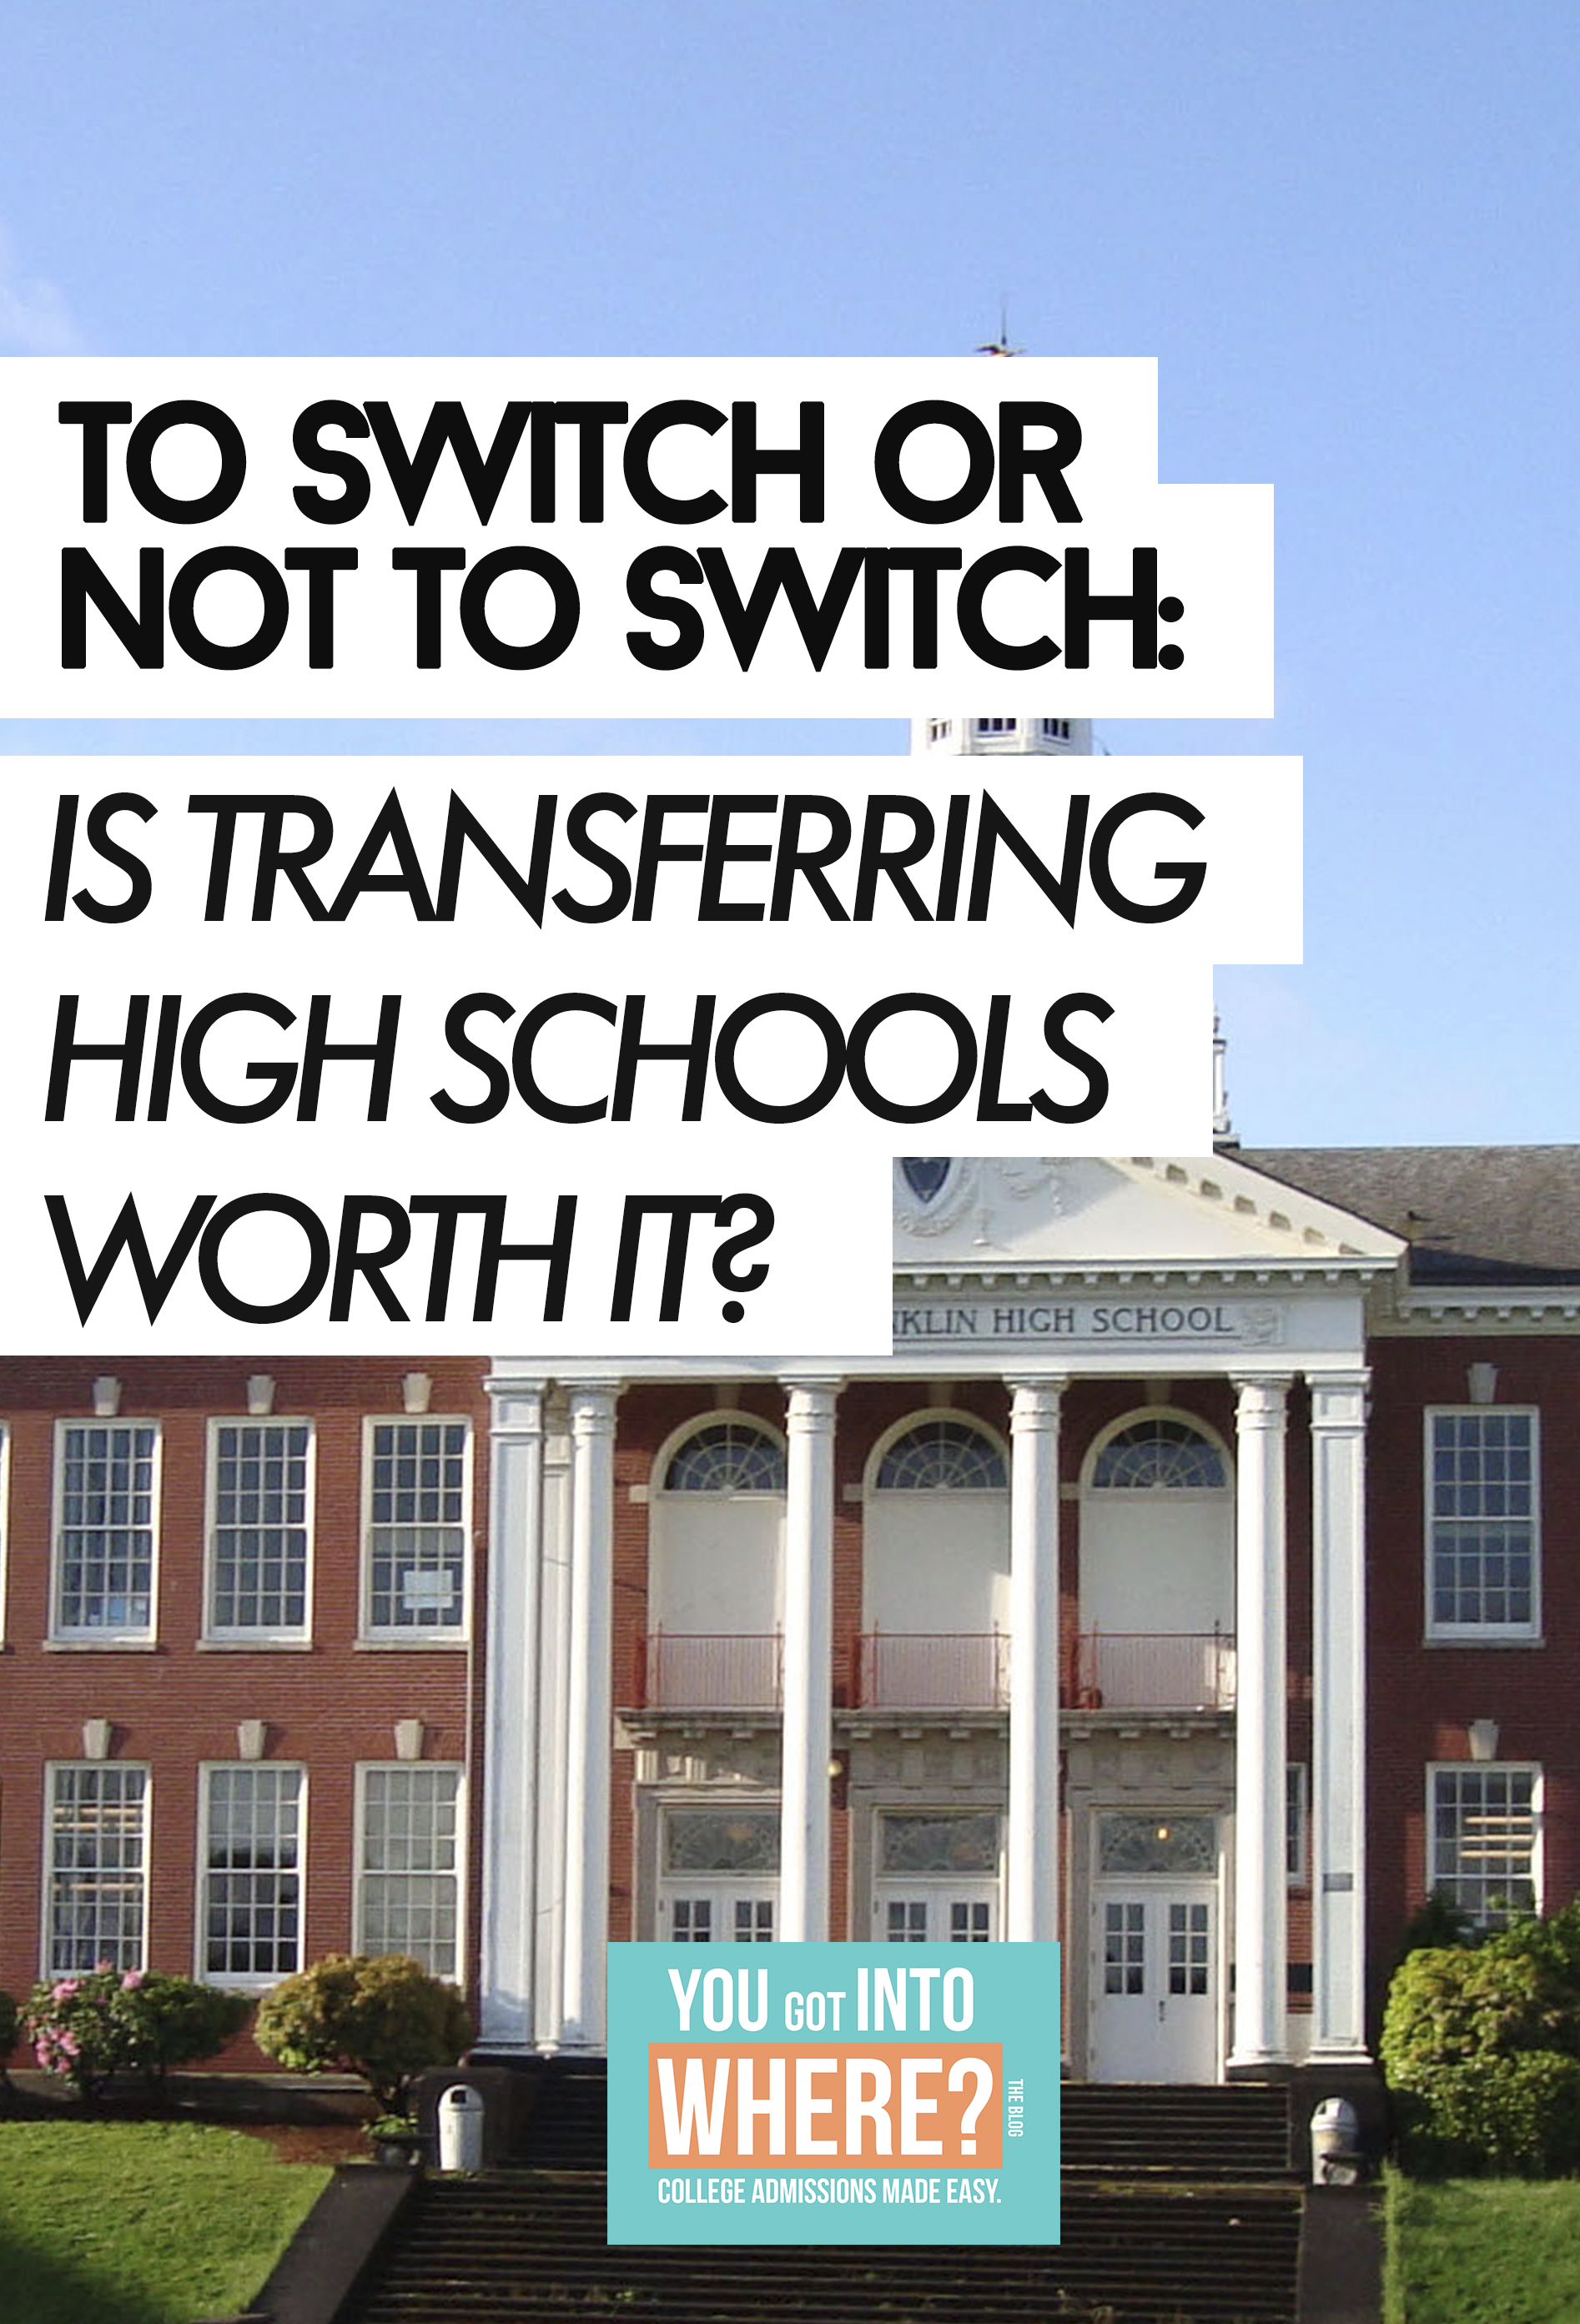 things-to-consider-when-transferring-high-schools.png